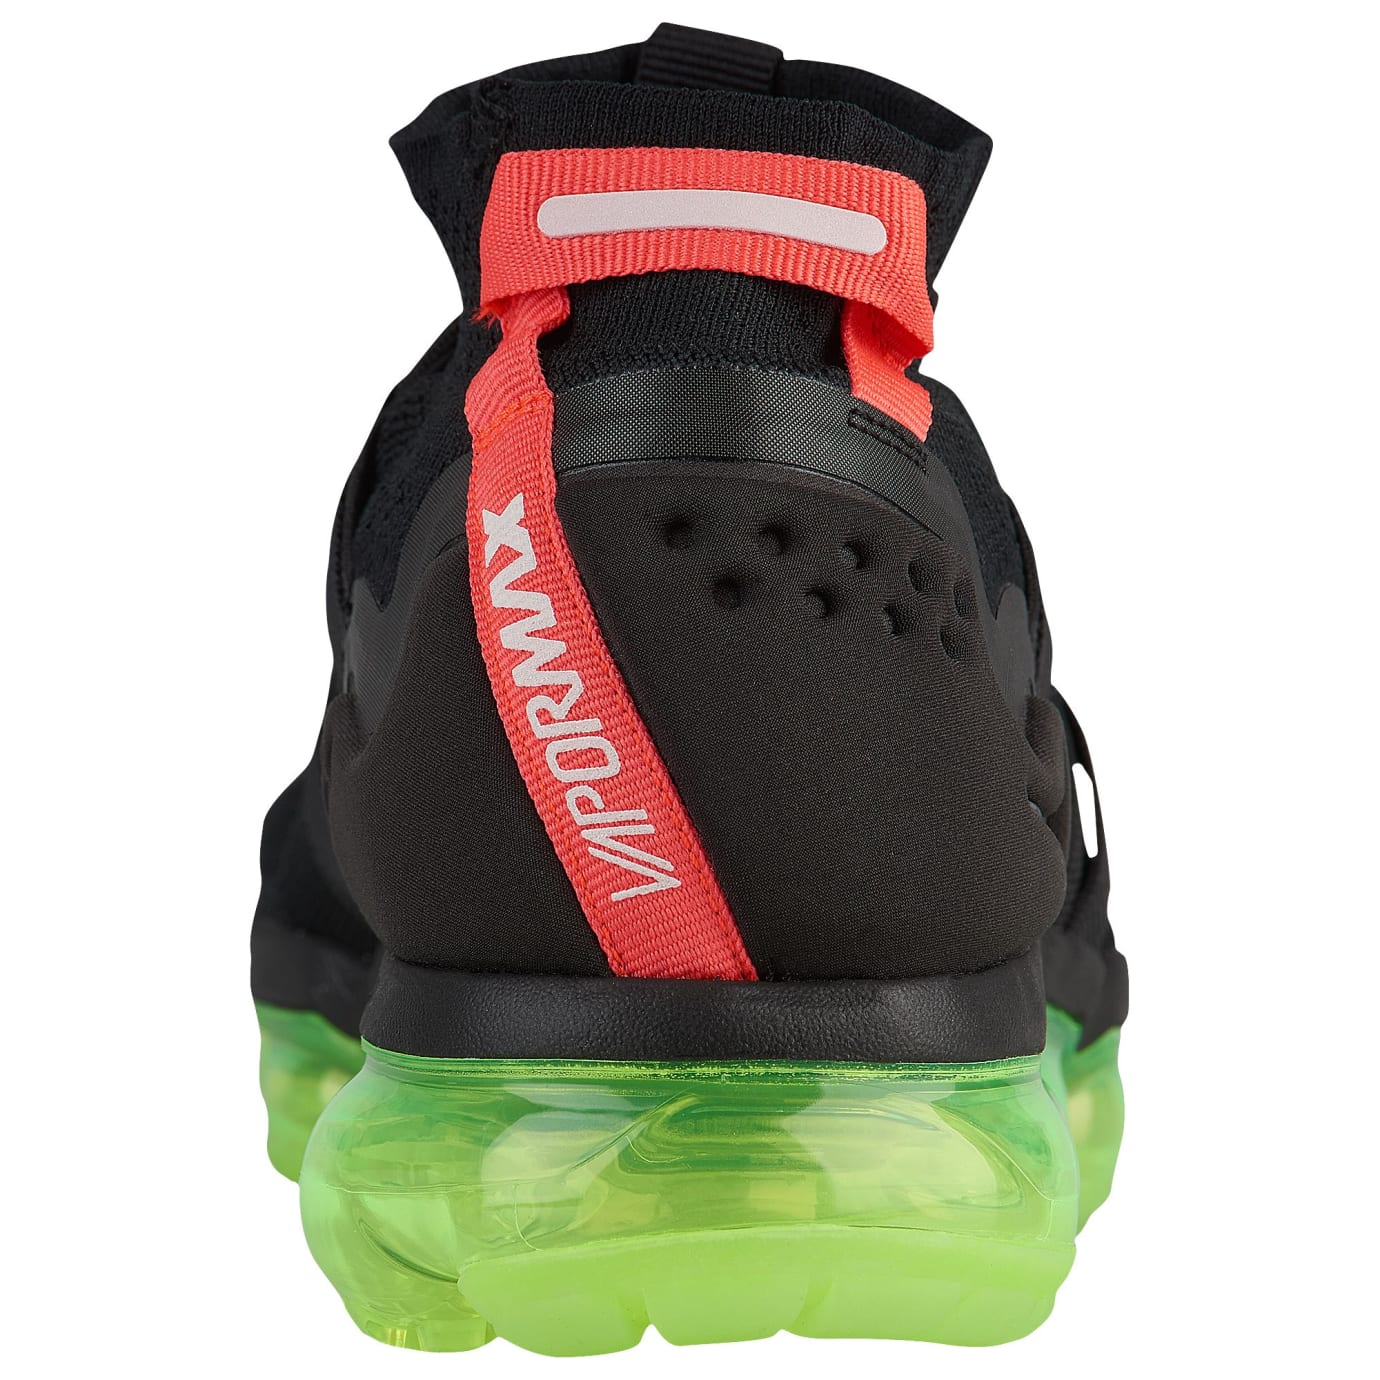 944c2e34be Image via Foot Locker Nike Air VaporMax Flyknit Utility Yeezy Black Volt  Crimson Release Date AH6834-007 Heel